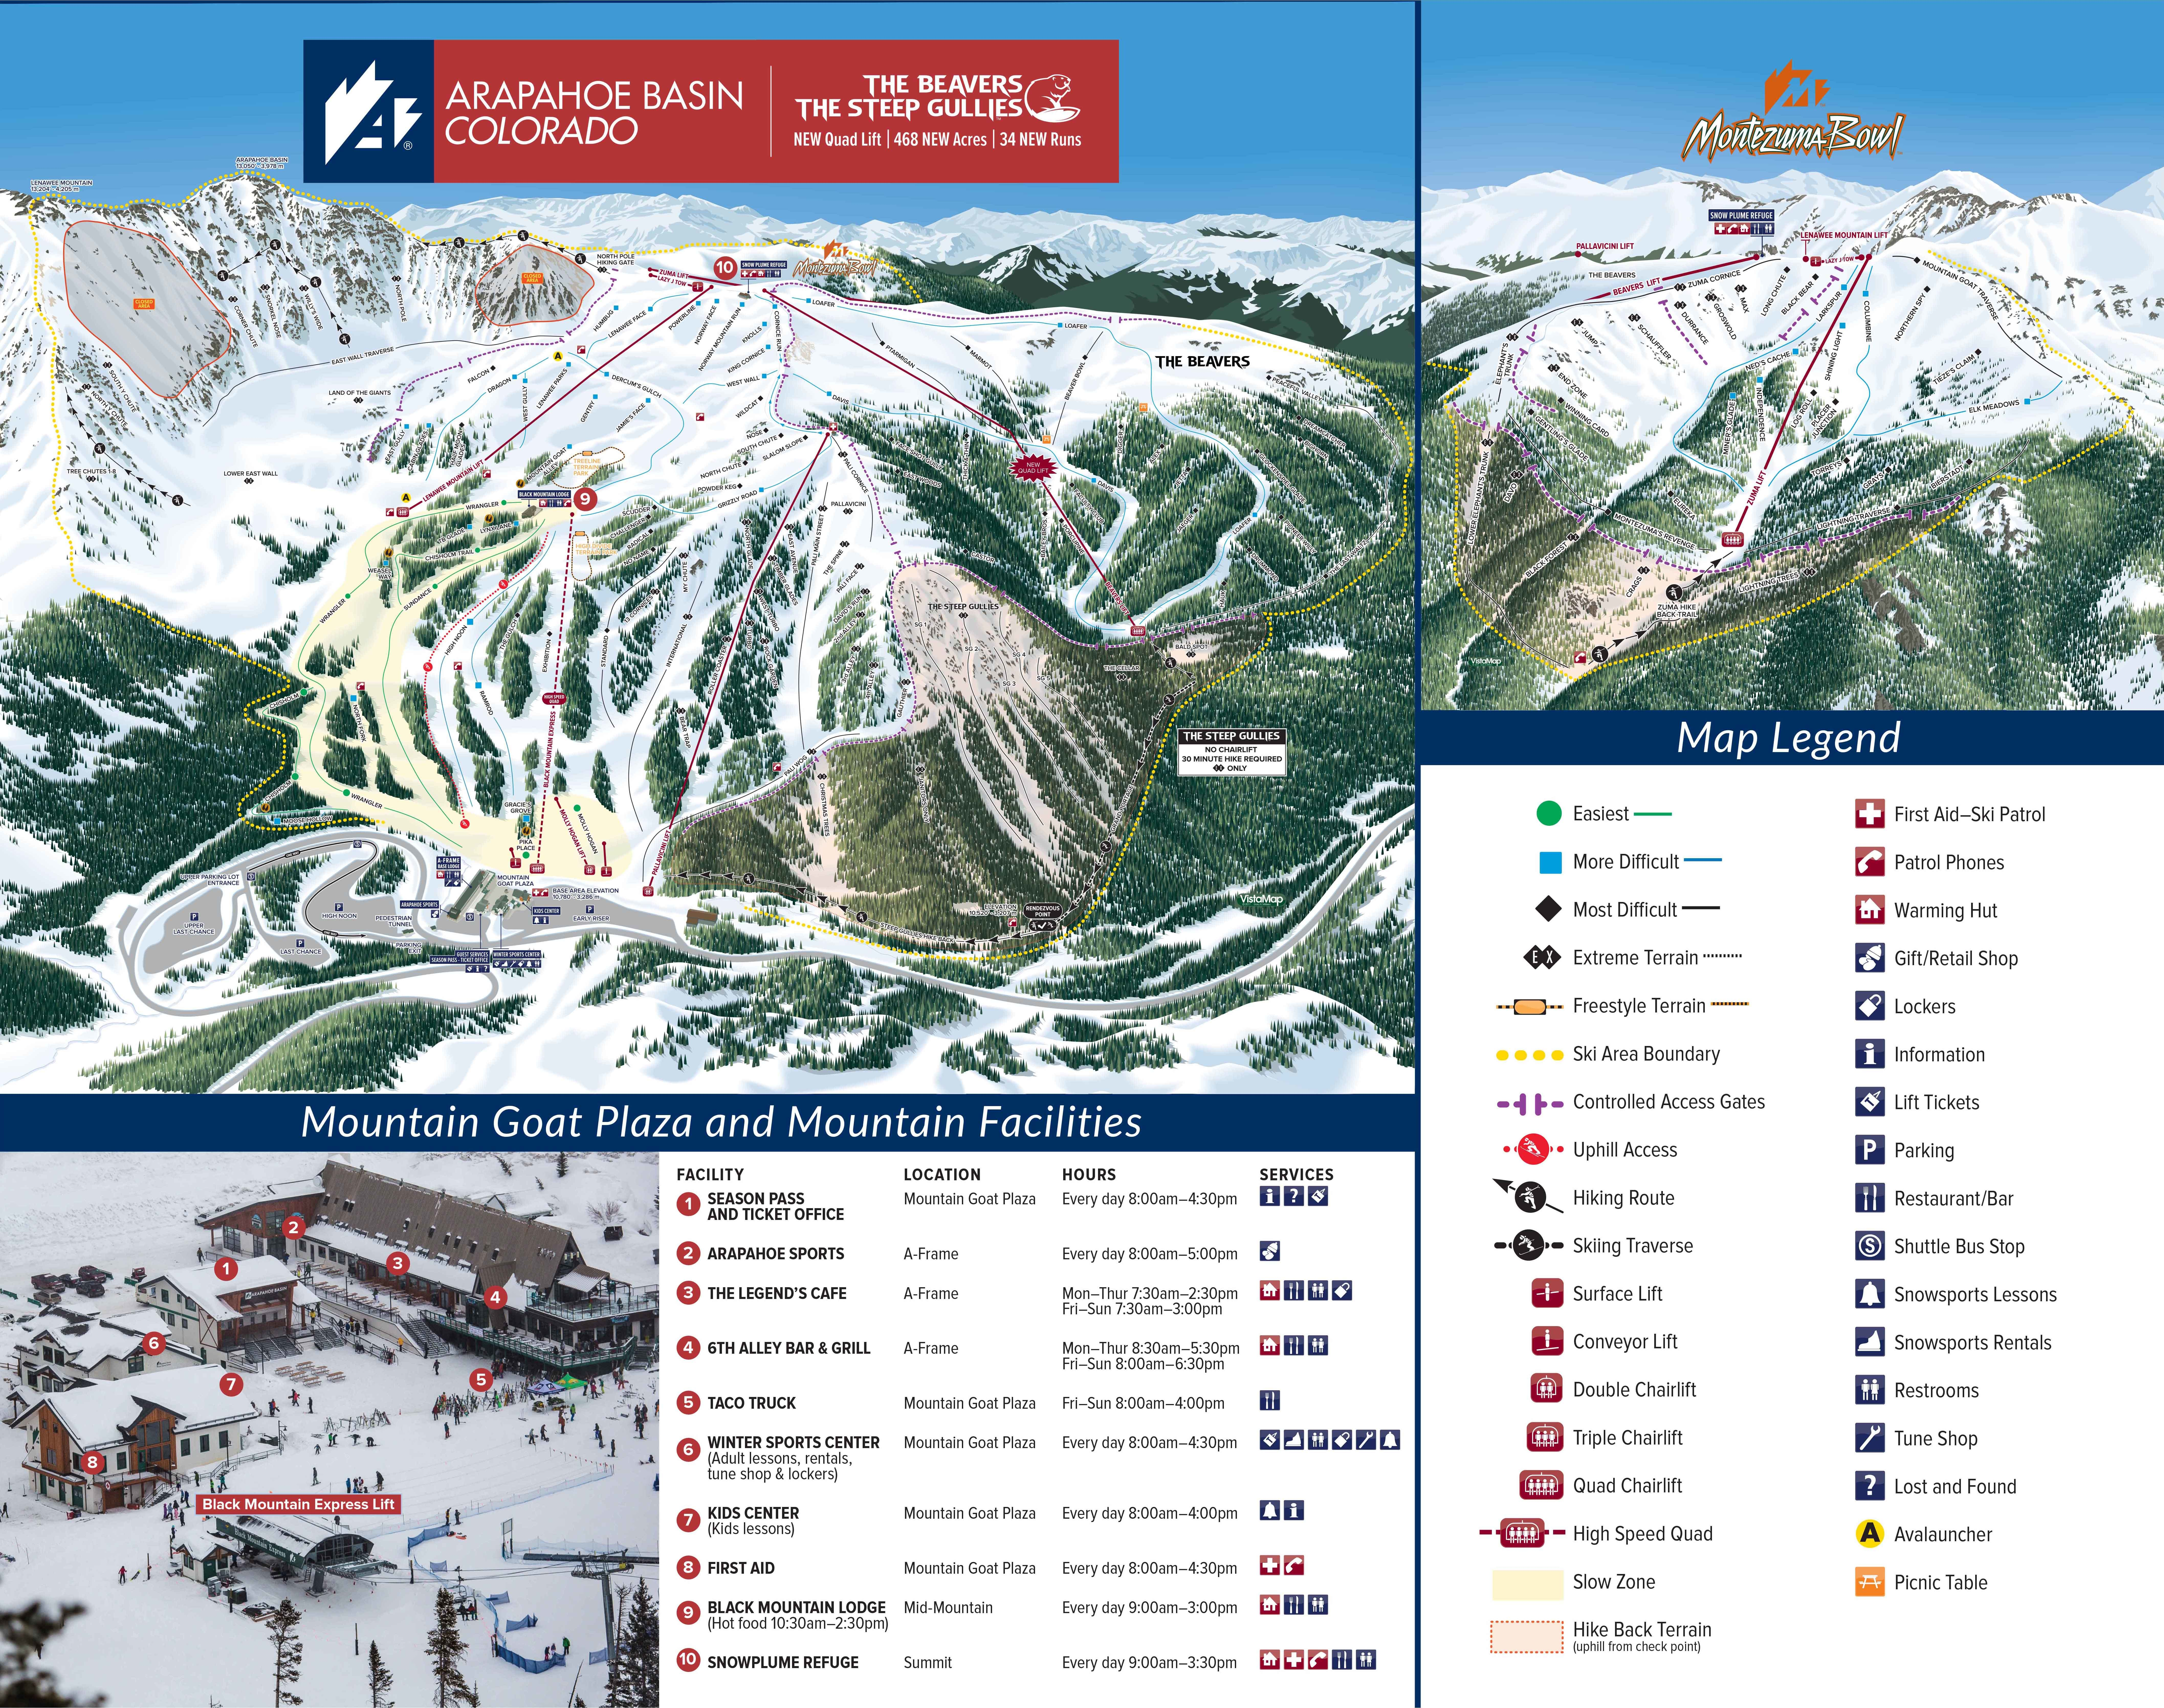 Arapahoe Basin Ski Area Trail Map | OnTheSnow on colorado ski country map, summit county colorado map, lake tahoe map, colorado road map, california map, arapahoe basin map, breckenridge map, alaska map, st martin resorts map, bristol mountain ski resort trail map, colorado snowboarding, colorado map with cities, ski granby ranch map, colorado hotels map, colorado state map, grenada resorts map, vail map, colorado skiing, royal gorge canon city colorado map,